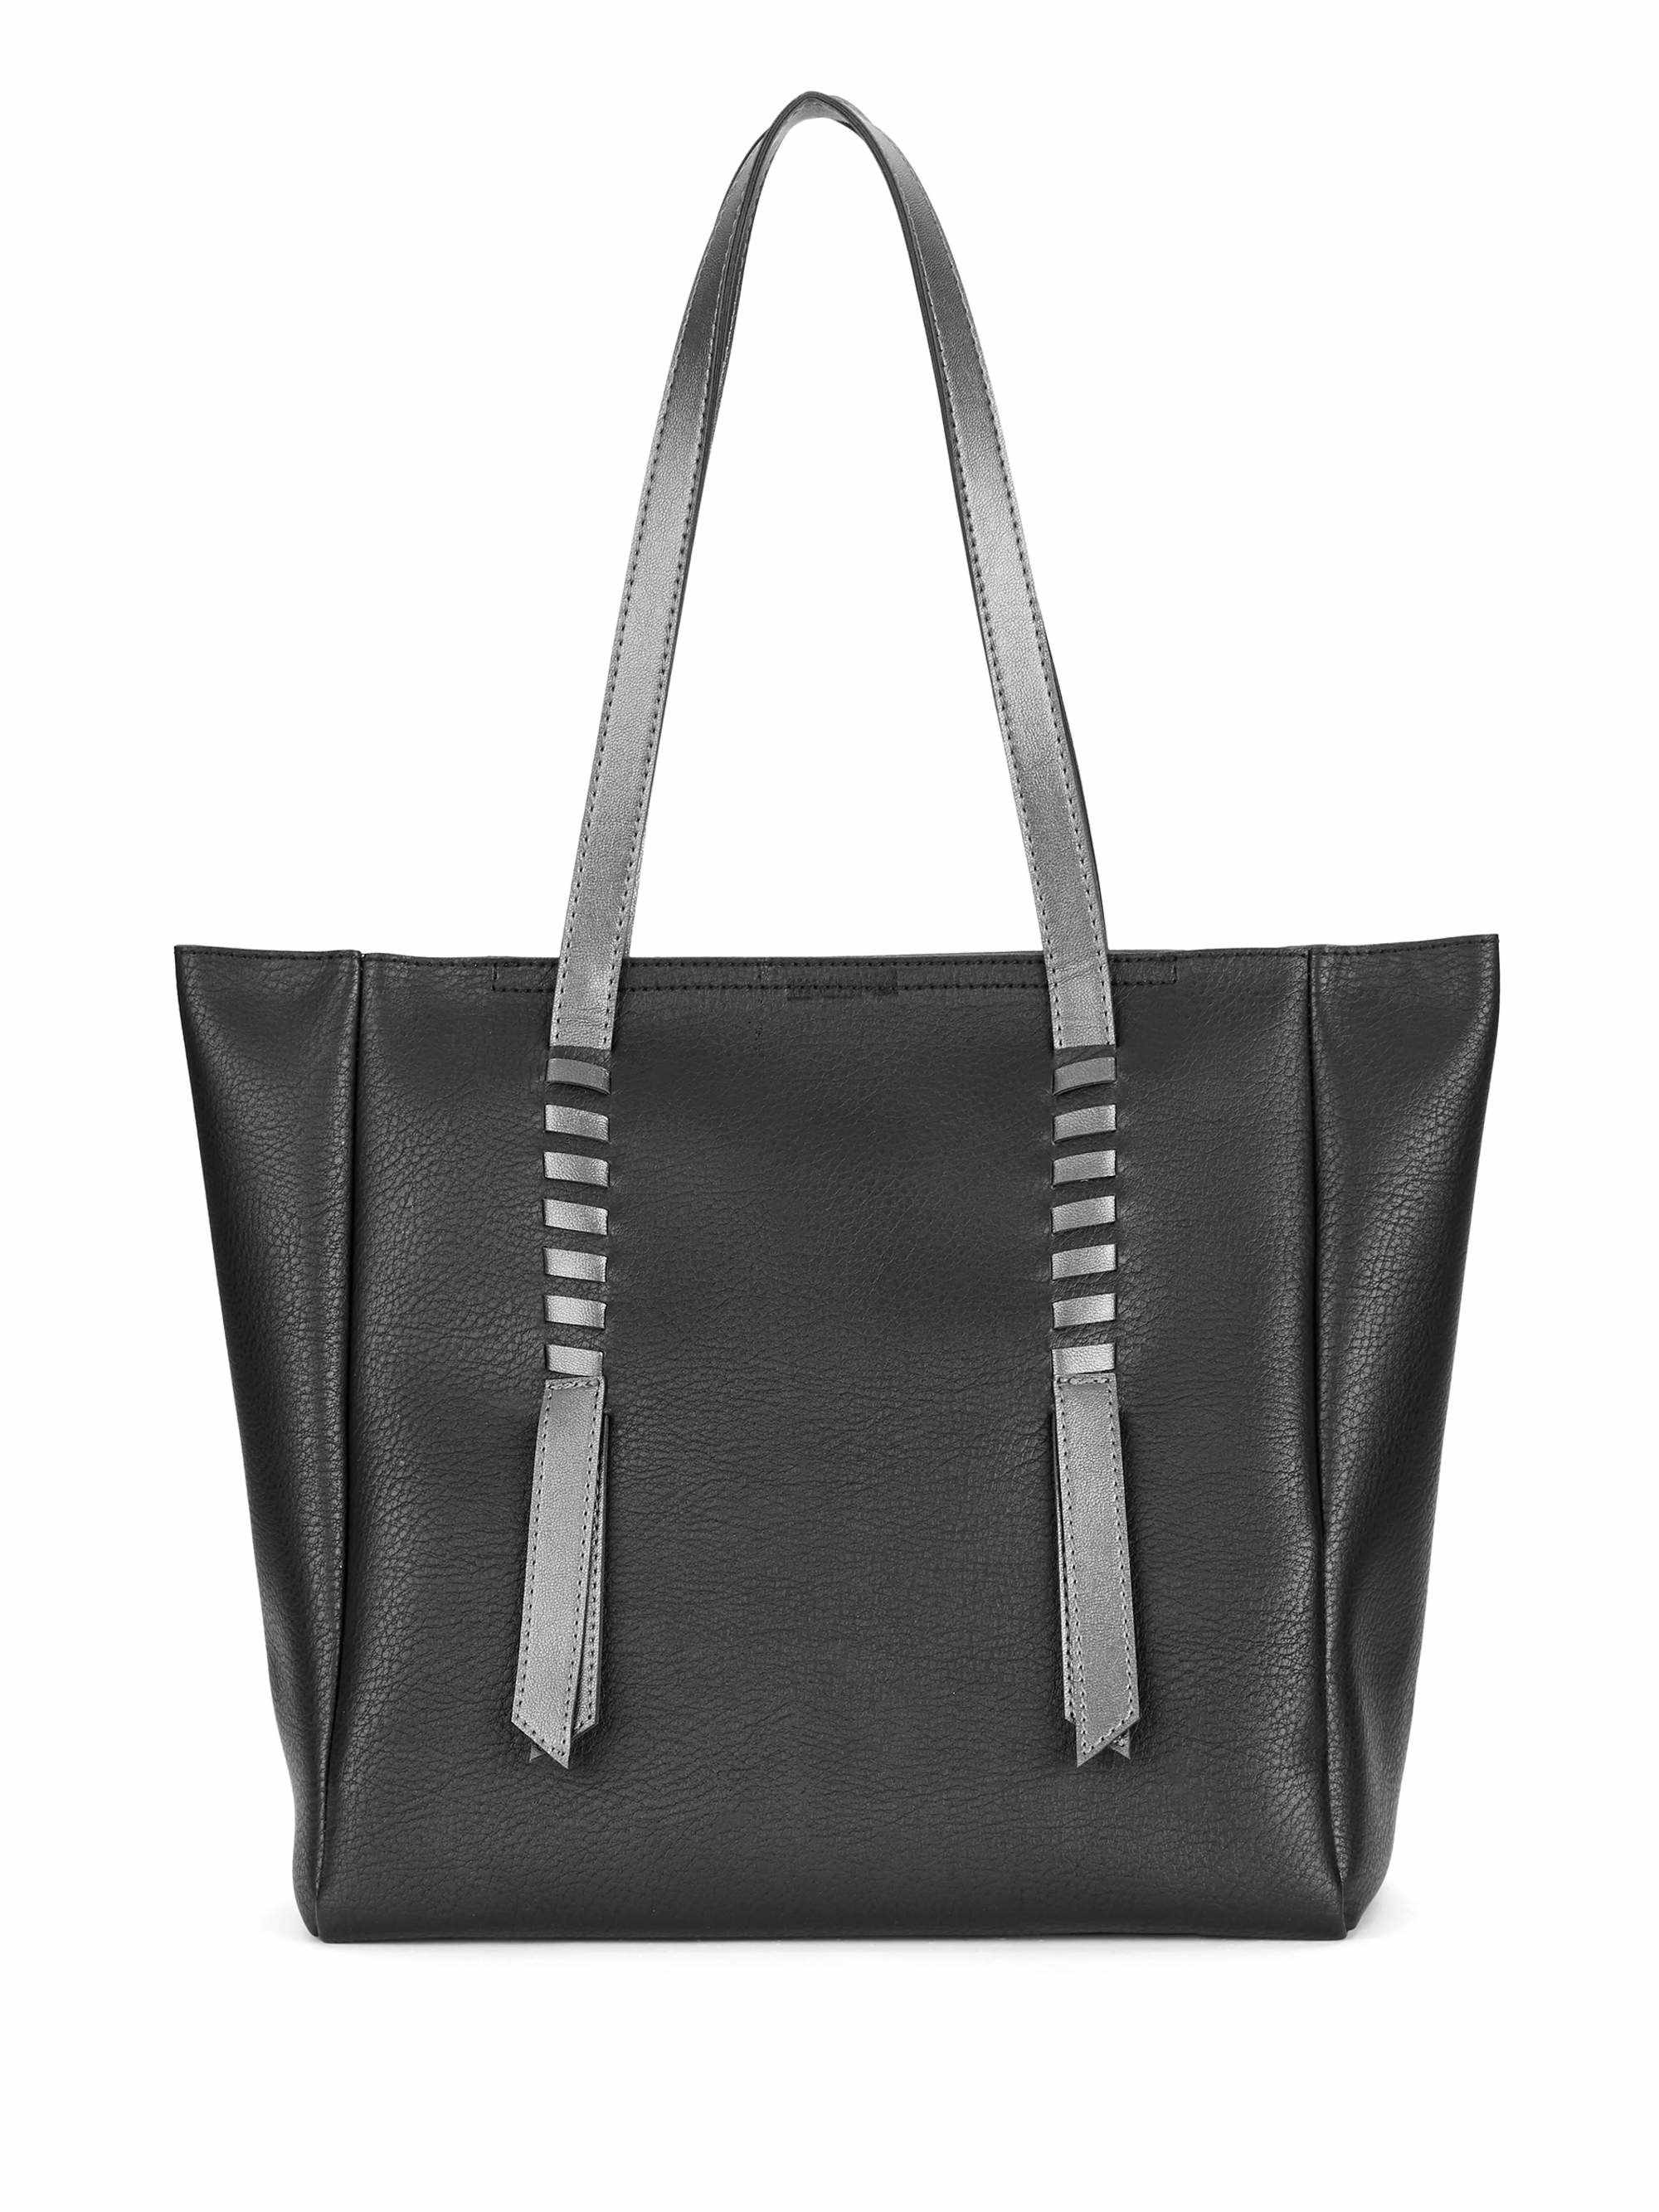 The tote bag in black with silver straps